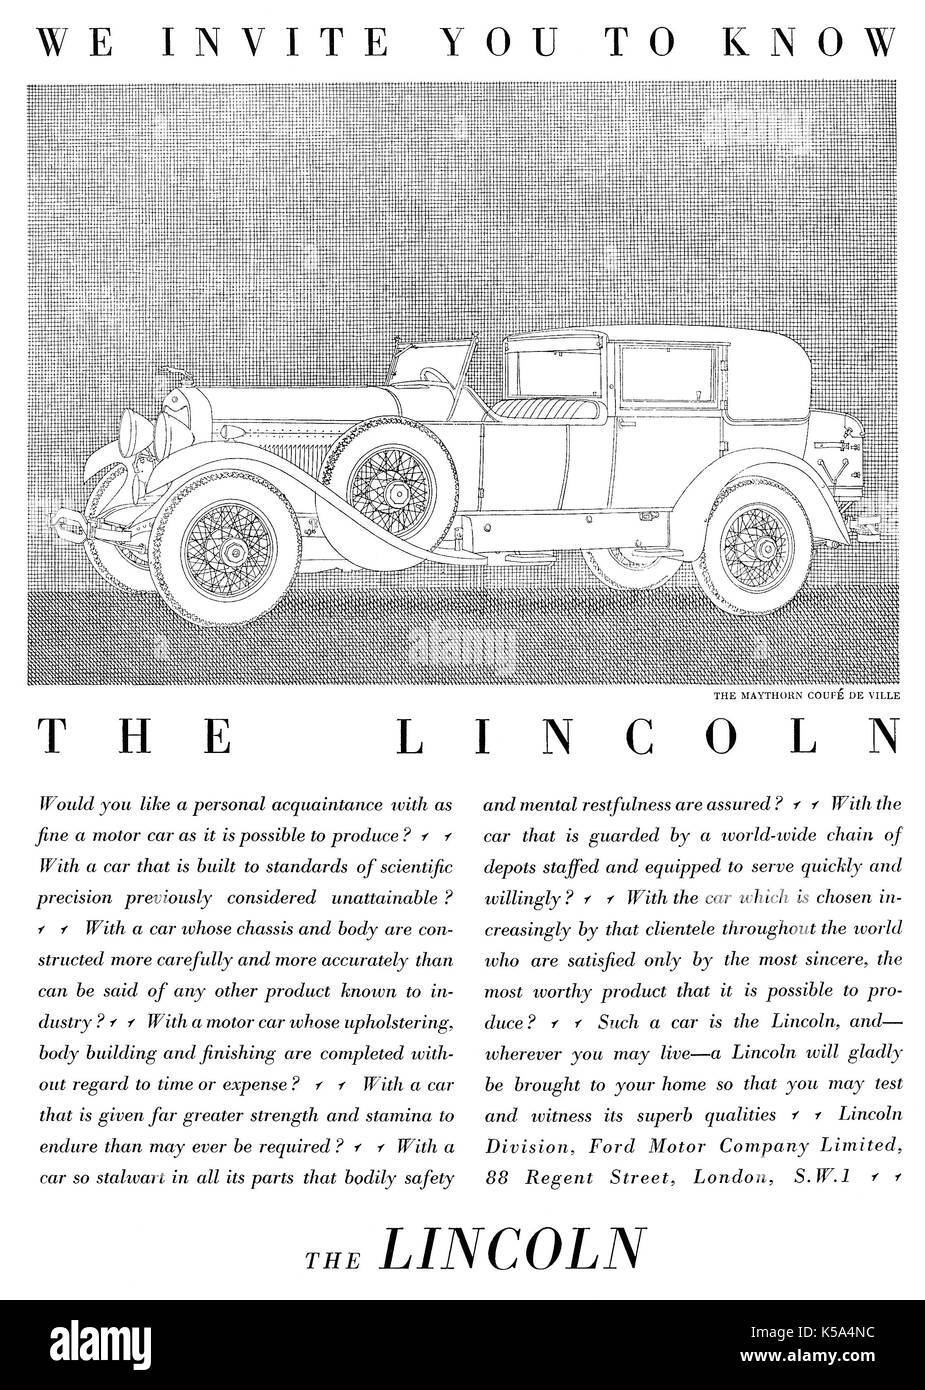 1930 British advertisement for the Lincoln Ford motor car, with an illustration of the Maythorn Coupe De Ville. - Stock Image